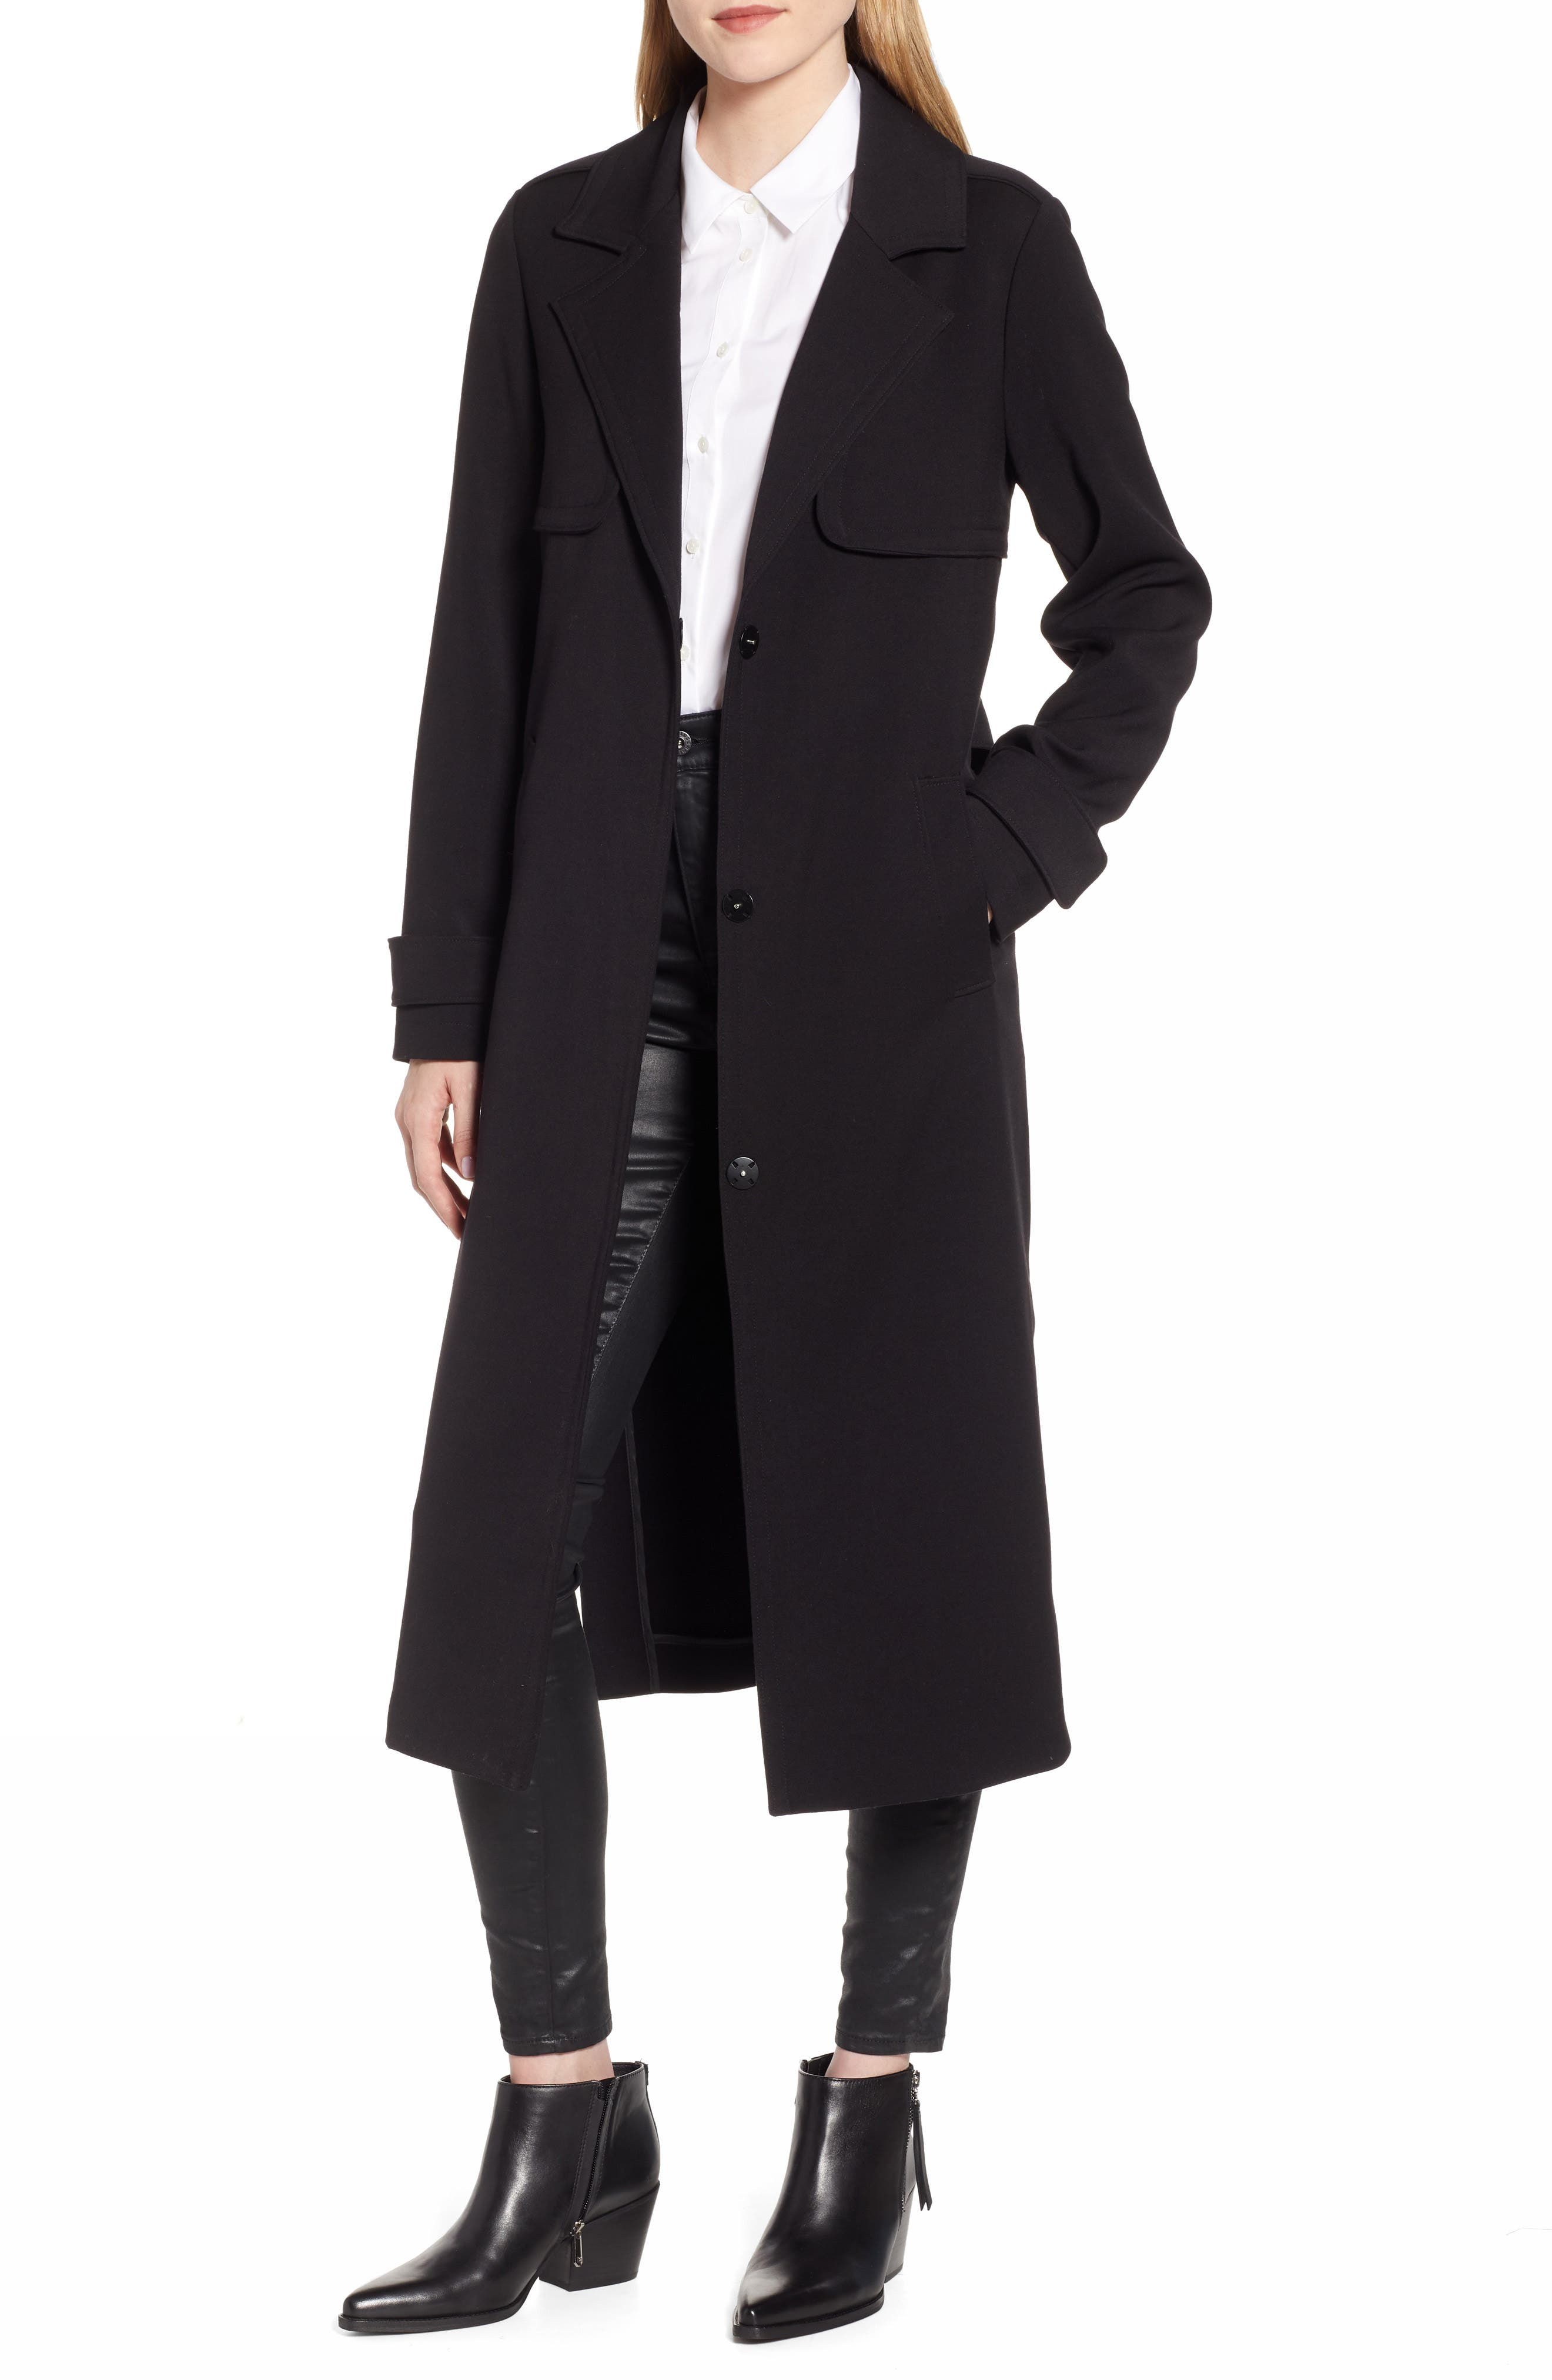 KENNETH COLE NEW YORK Ponte Trench Coat, Main, color, BLACK